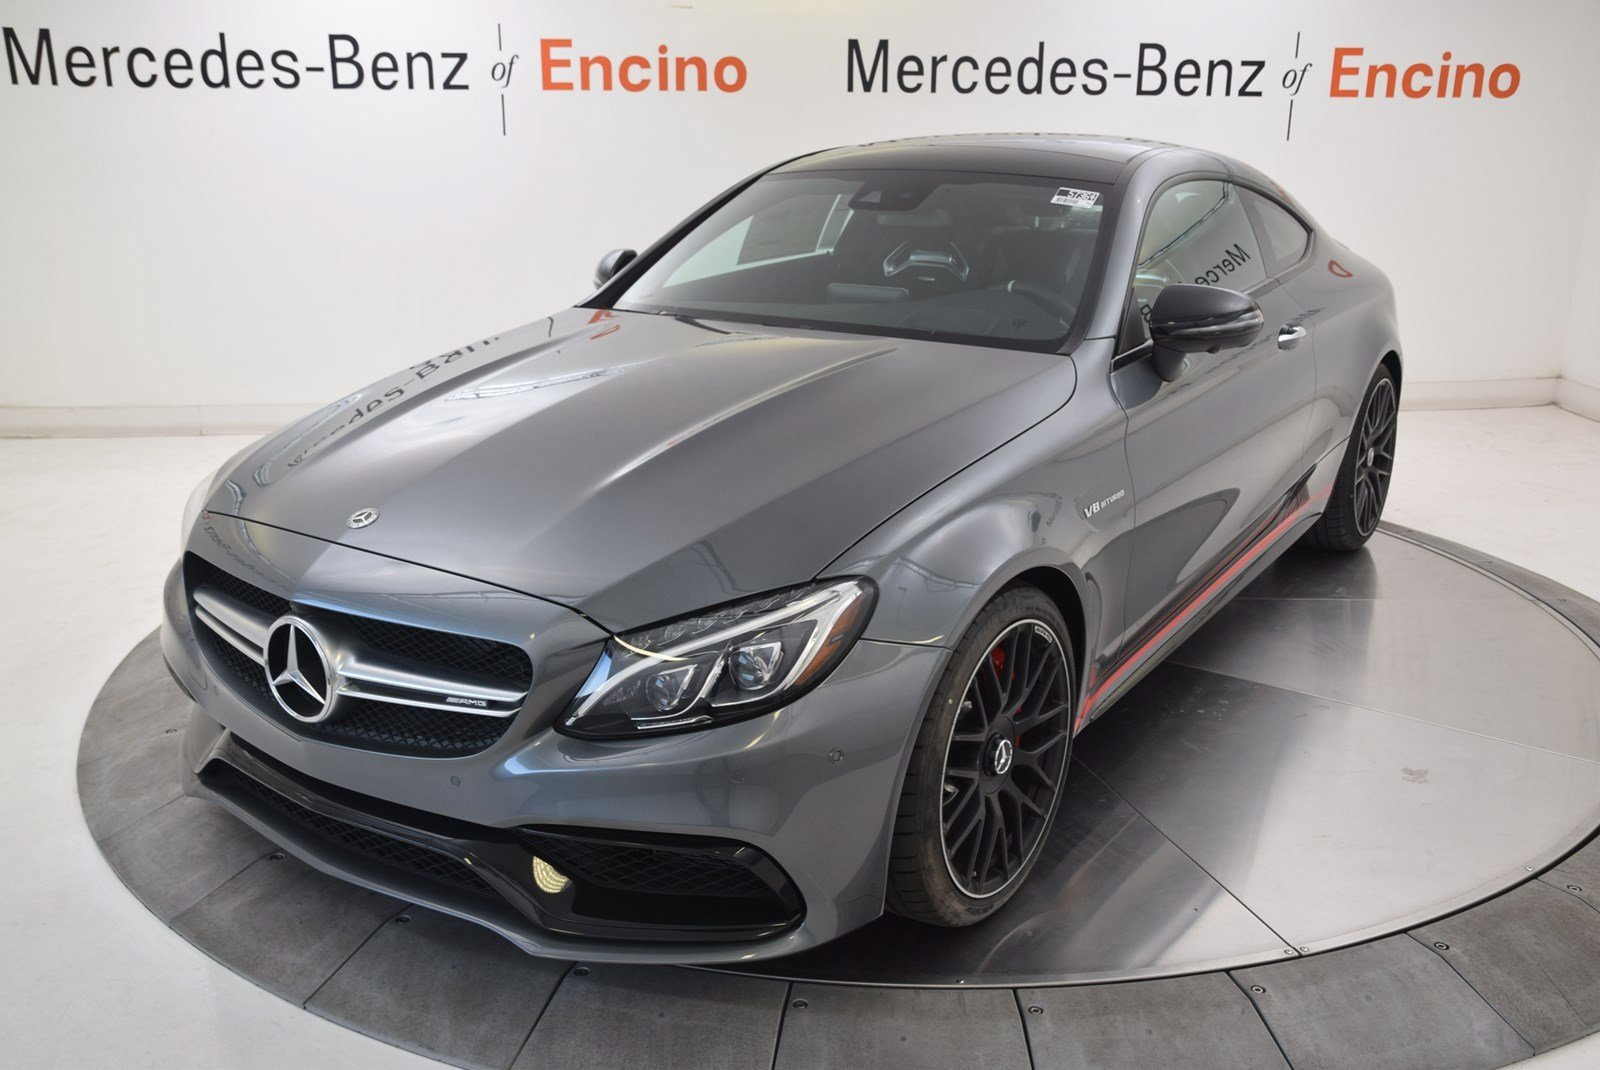 New 2018 Mercedes Benz C Class Amg C 63 S Coupe Coupe In Encino